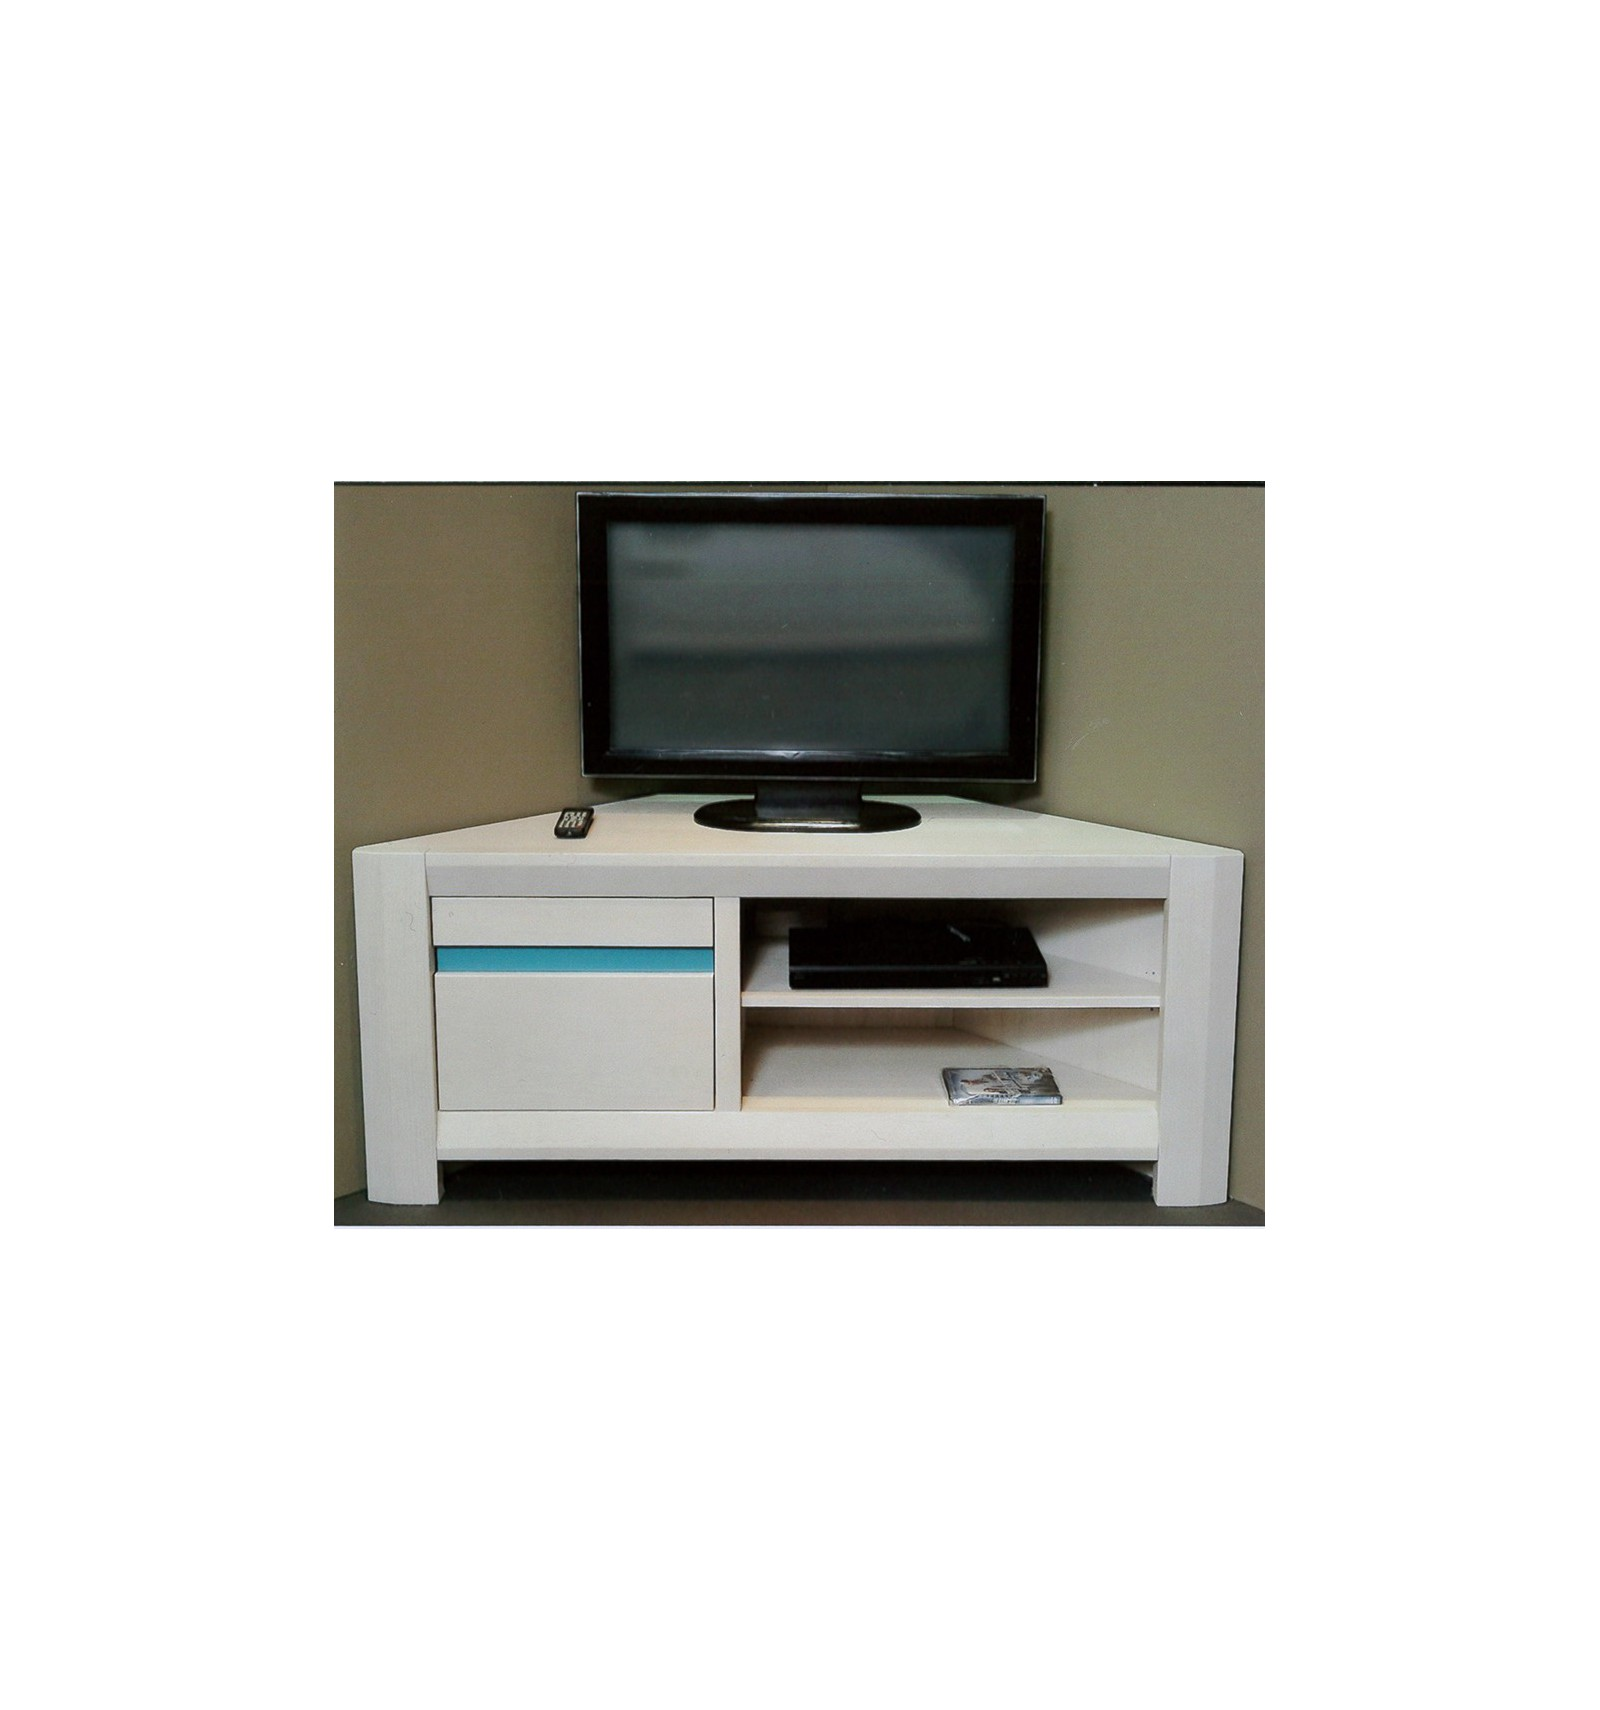 Meuble Tv D Angle Blanc Sellingstg Com # Pose Tele En Bois